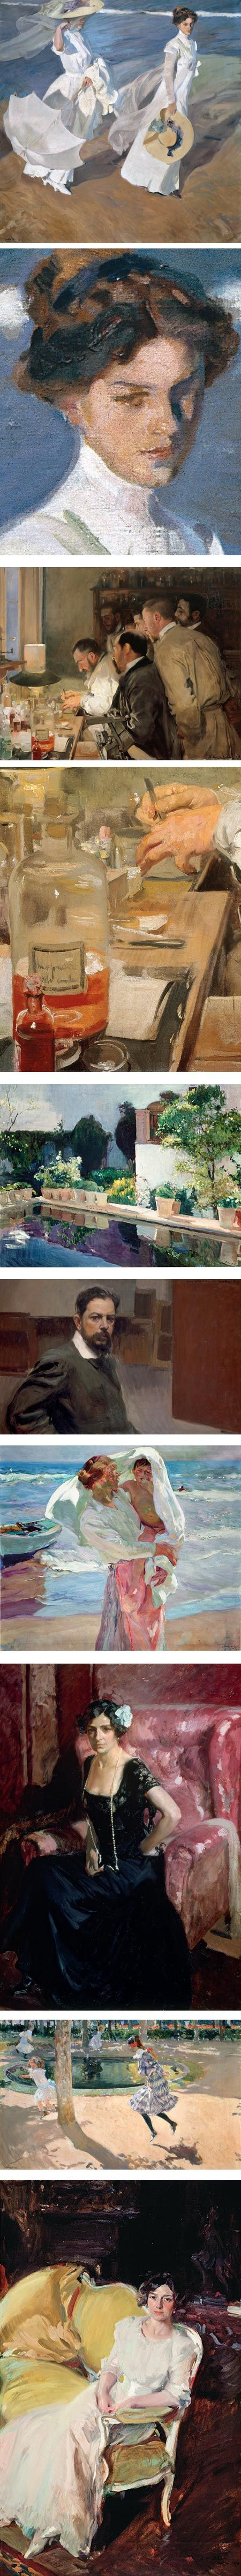 Museo Sorolla on Google Art Project; Joaquin Sorolla y Bastida